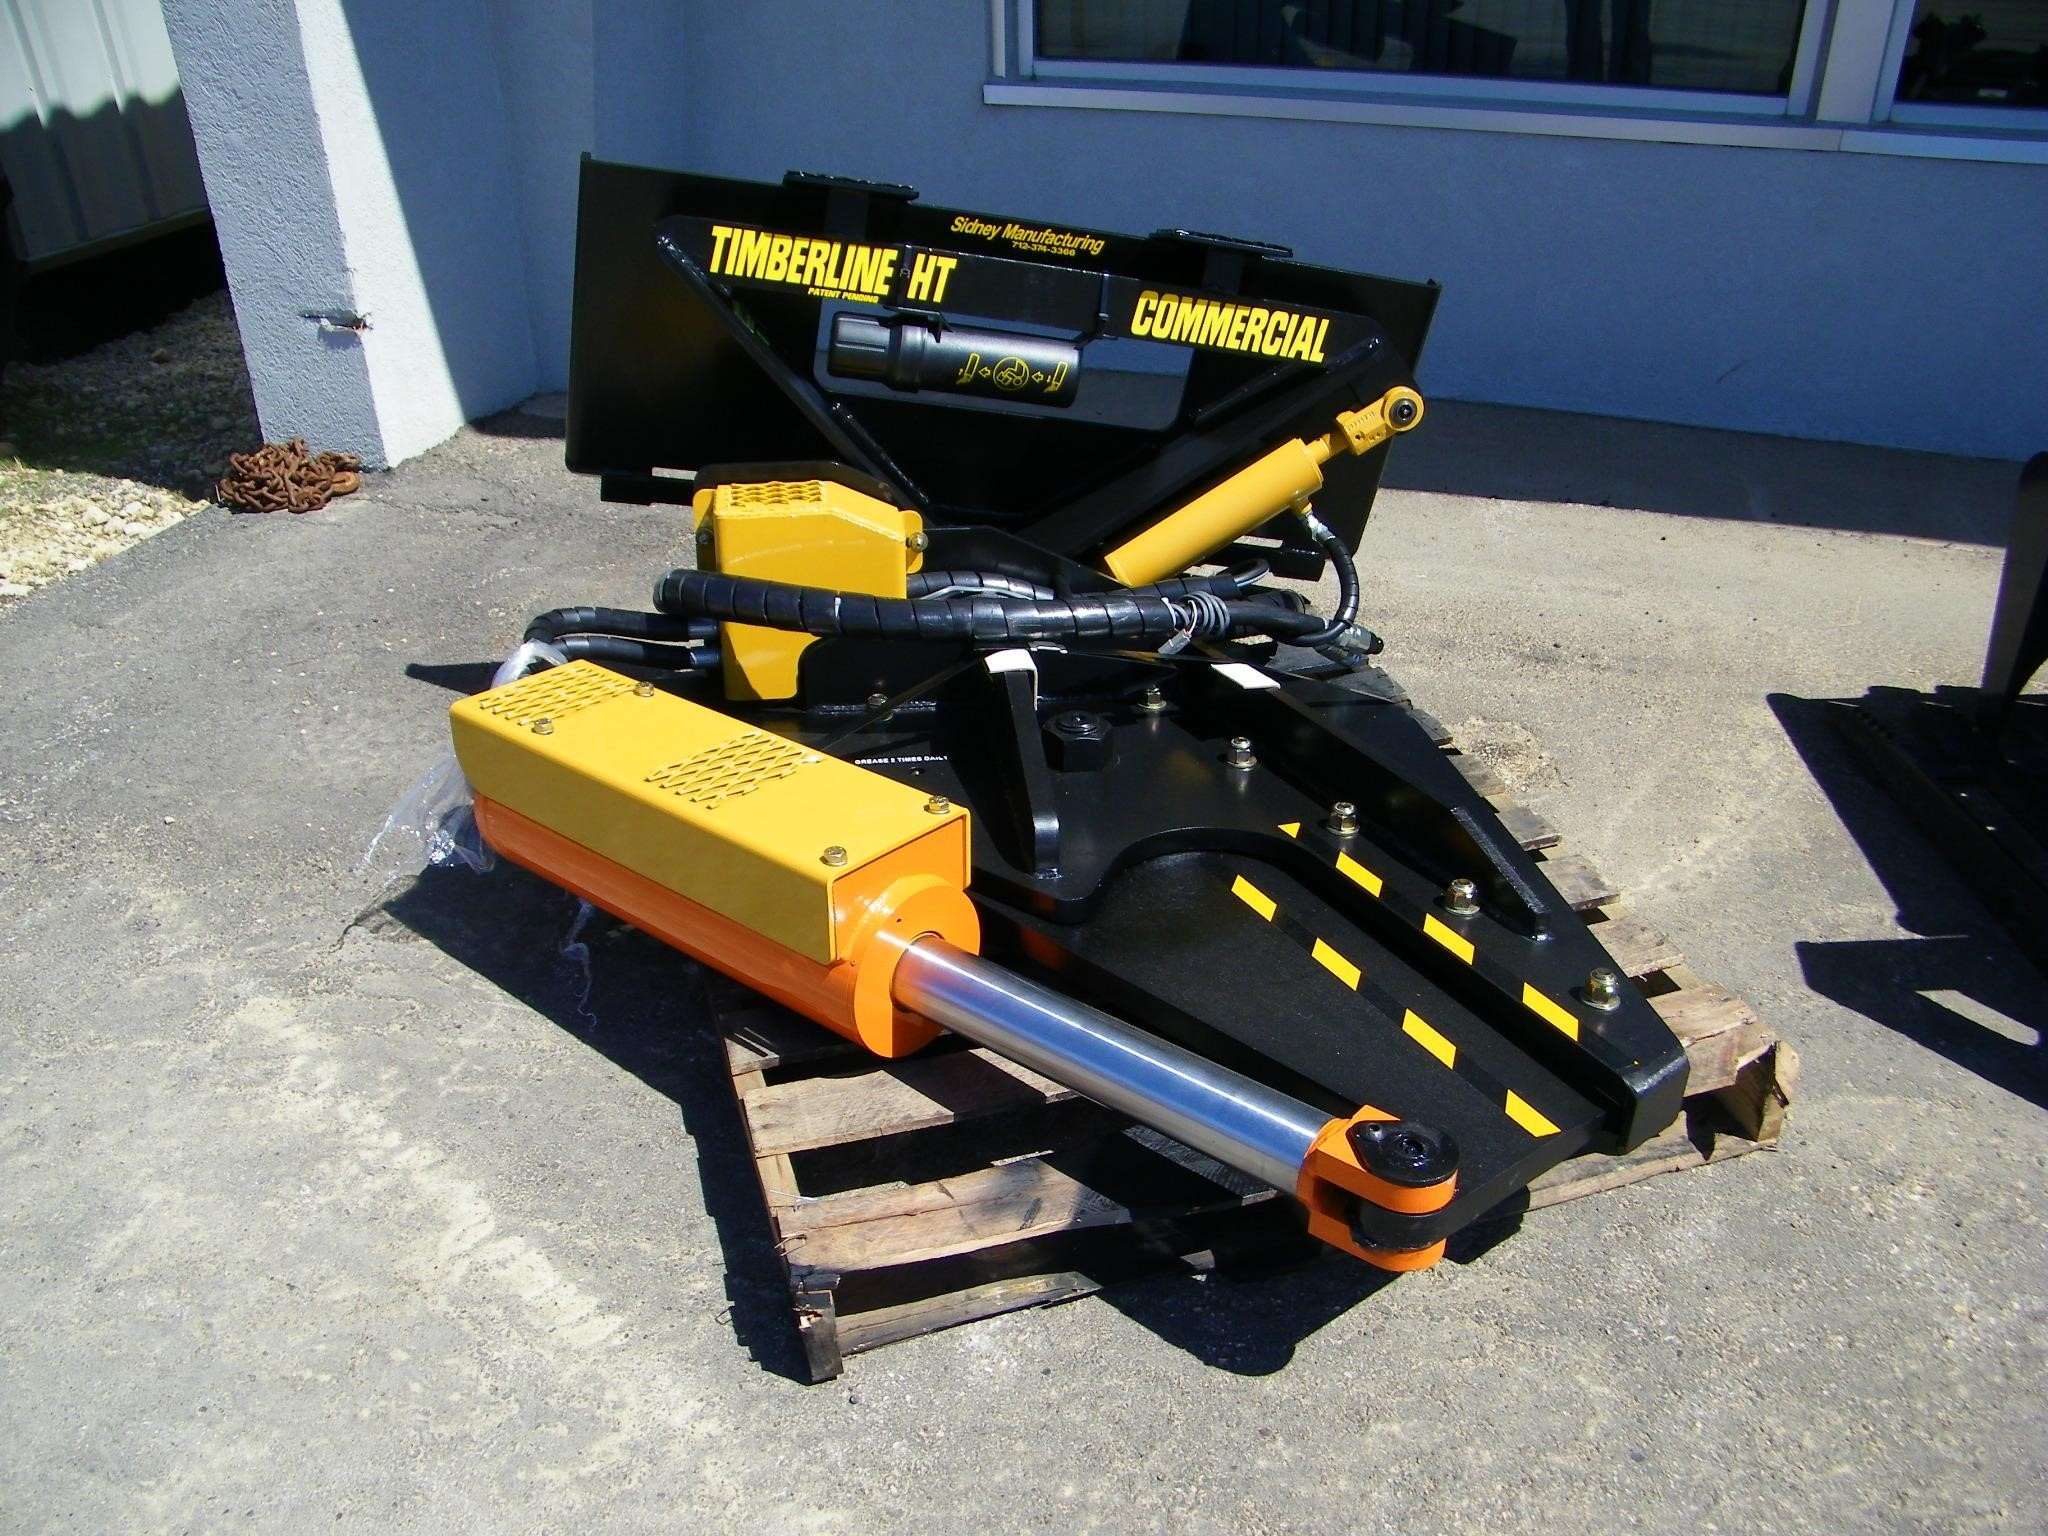 2020 Sidney Mfg Timberline HT16 Loader and Skid Steer Attachment